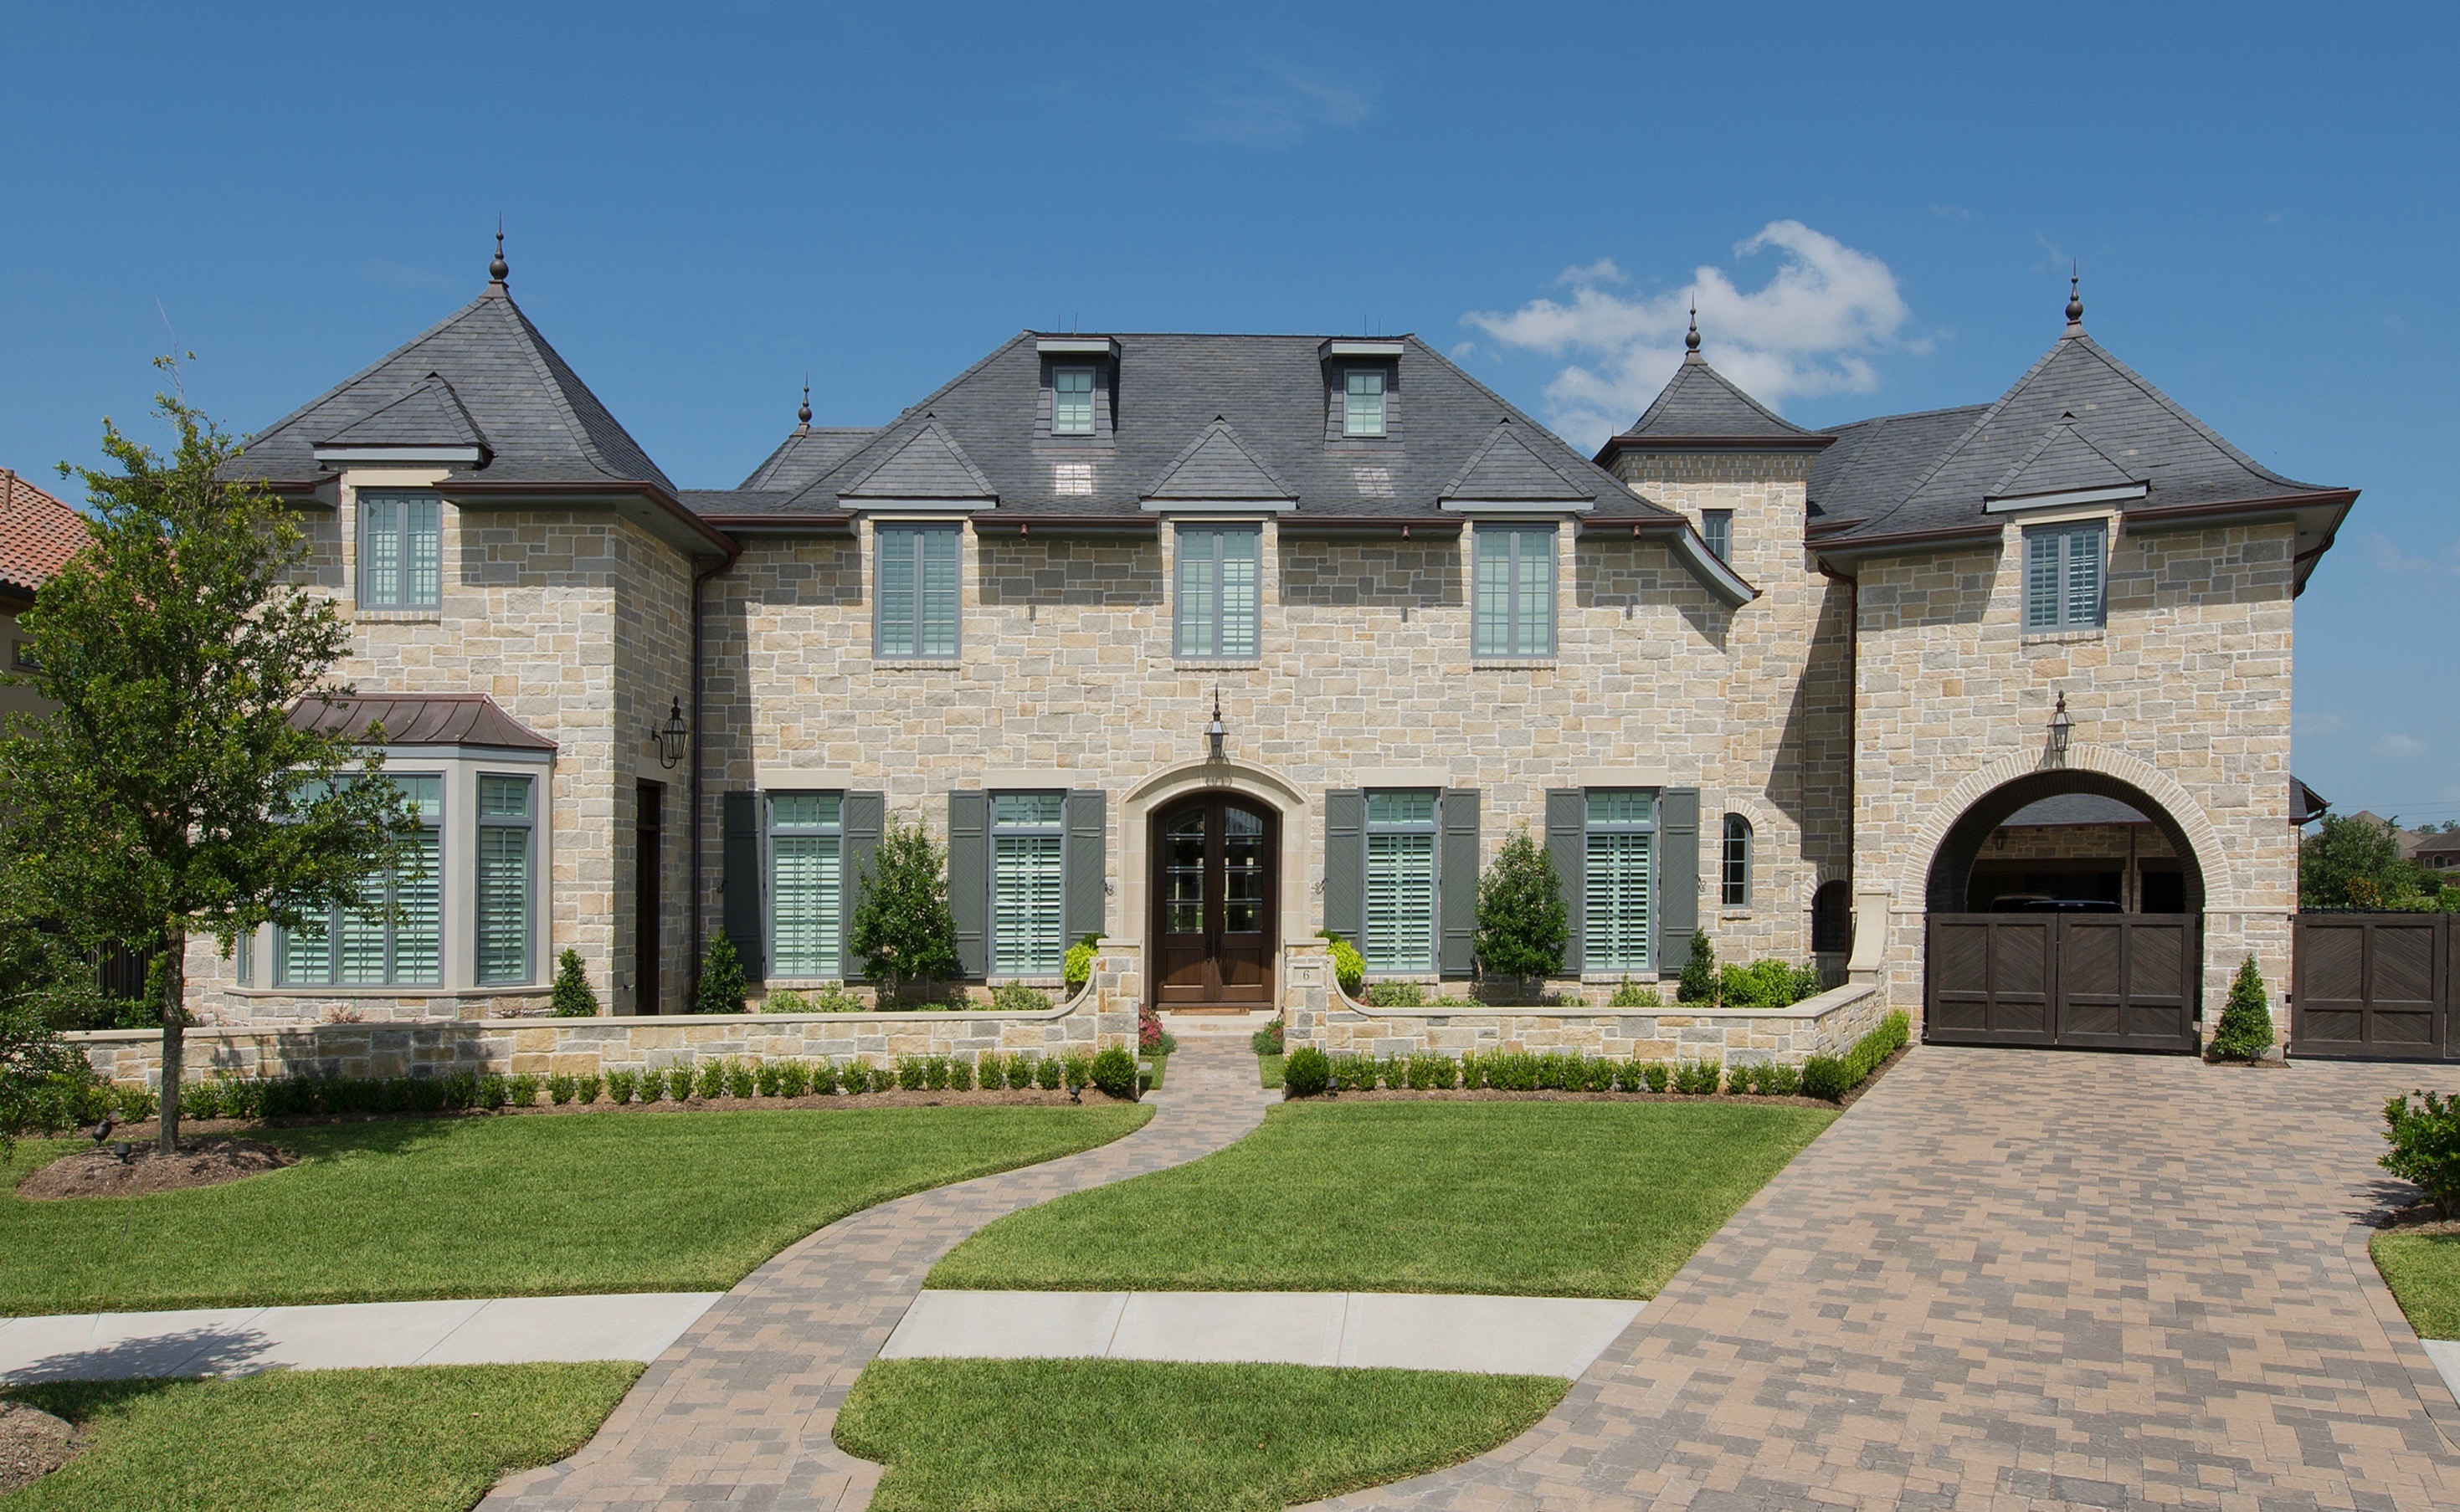 French country home architecture